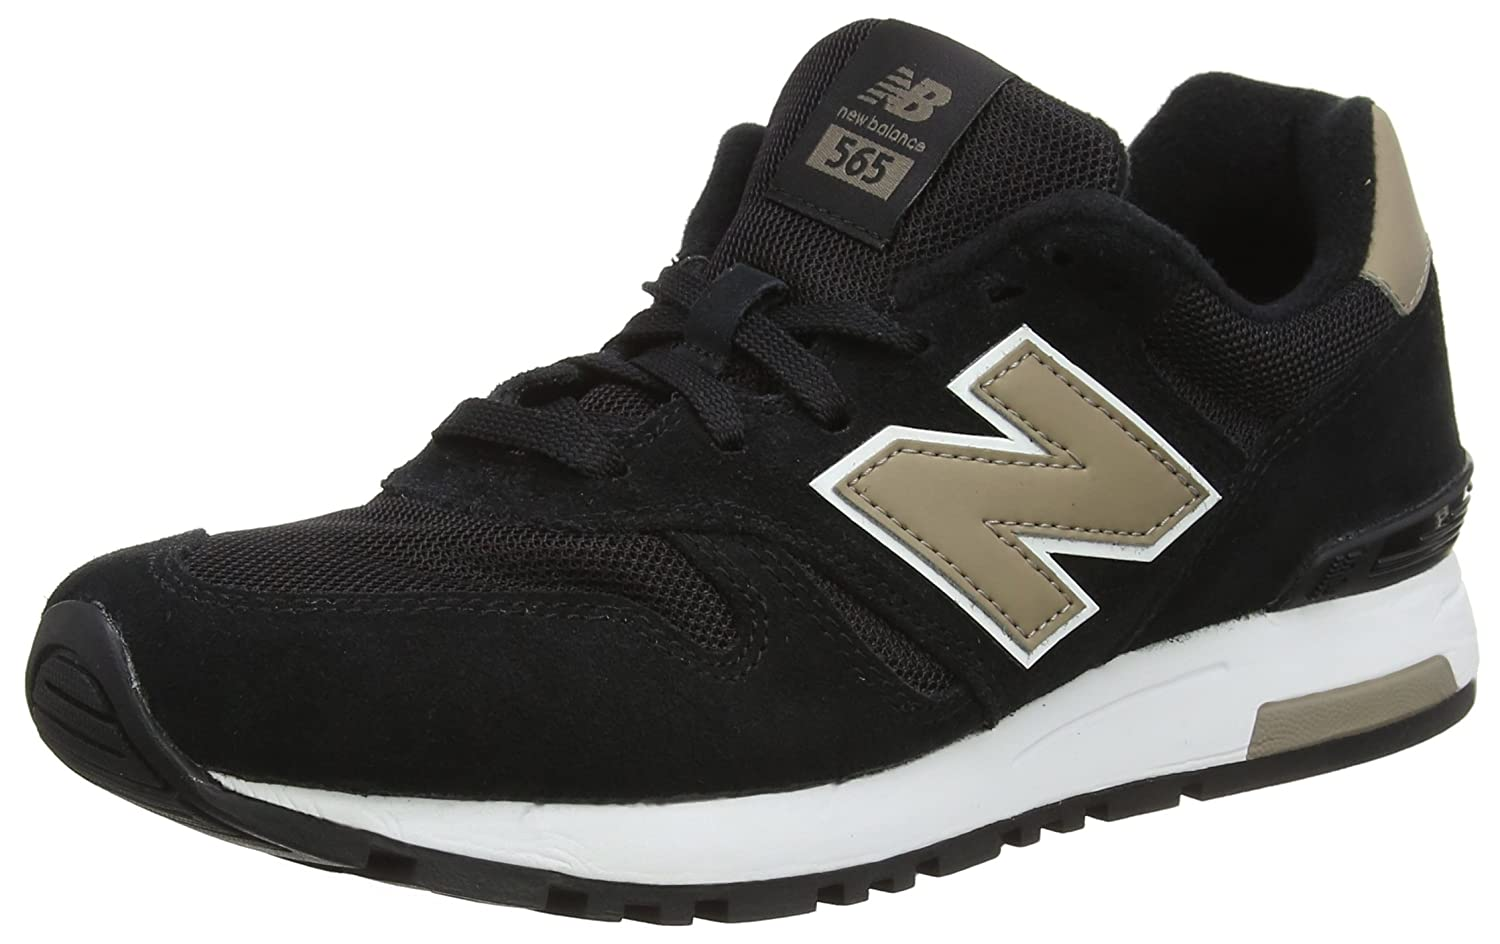 New Balance Men's M565 Classic Running Shoes